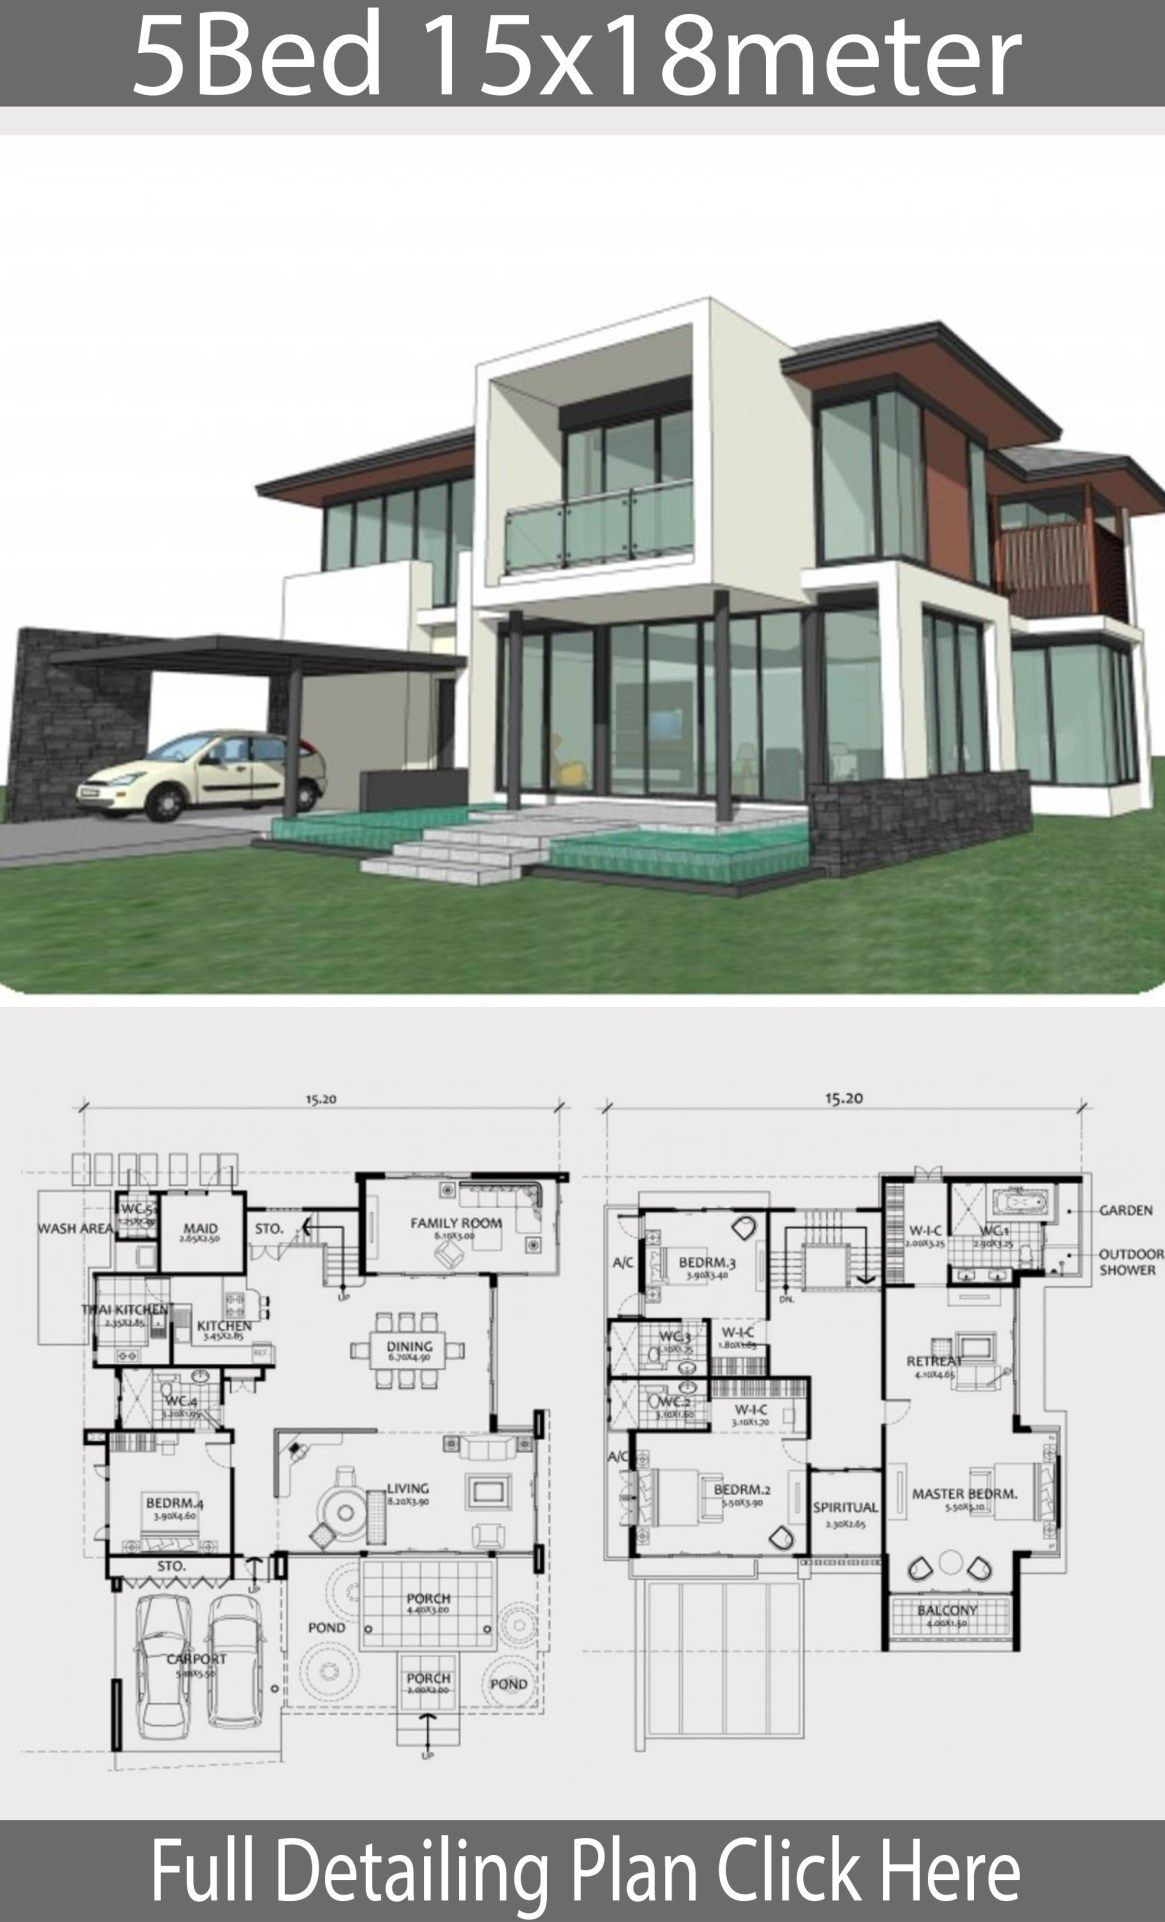 Home Design Plan 15x18m With 5 Bedrooms Home Design With Plansearch House Plans Mansion Bungalow House Plans Modern Contemporary House Plans